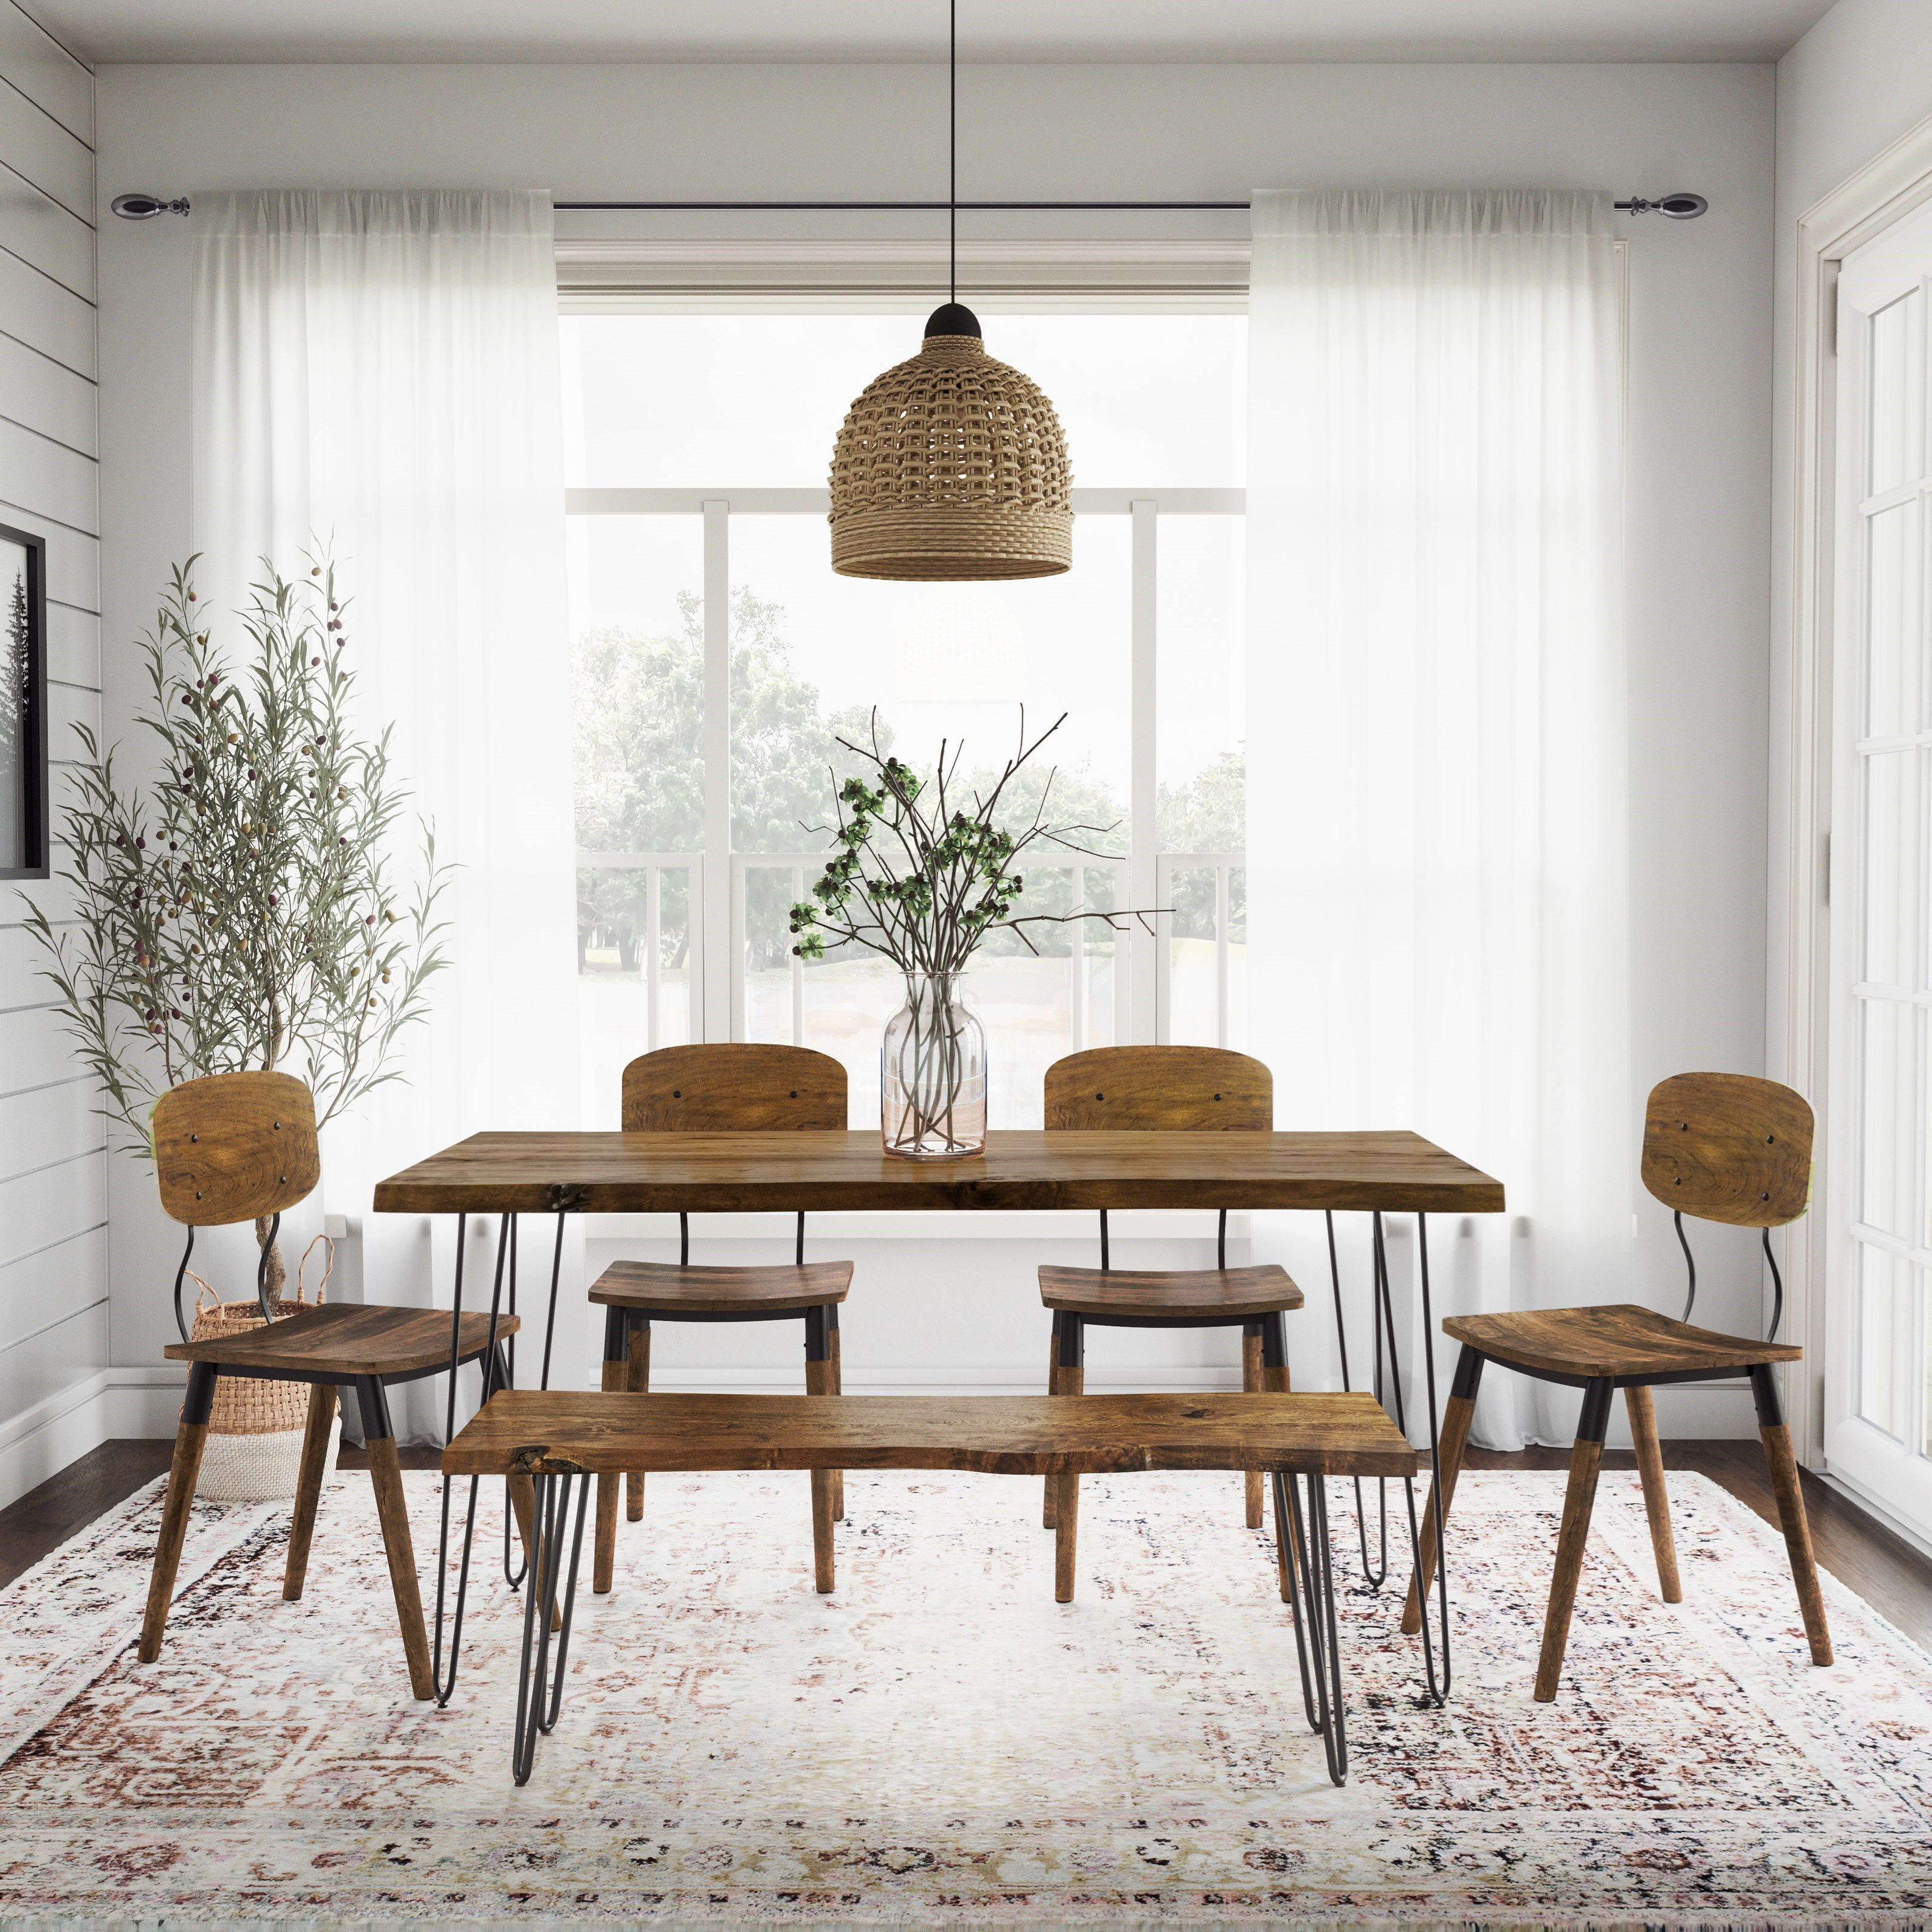 Nature's Edge 6 Piece Table and Chair Set with Bench by Jofran at Jofran